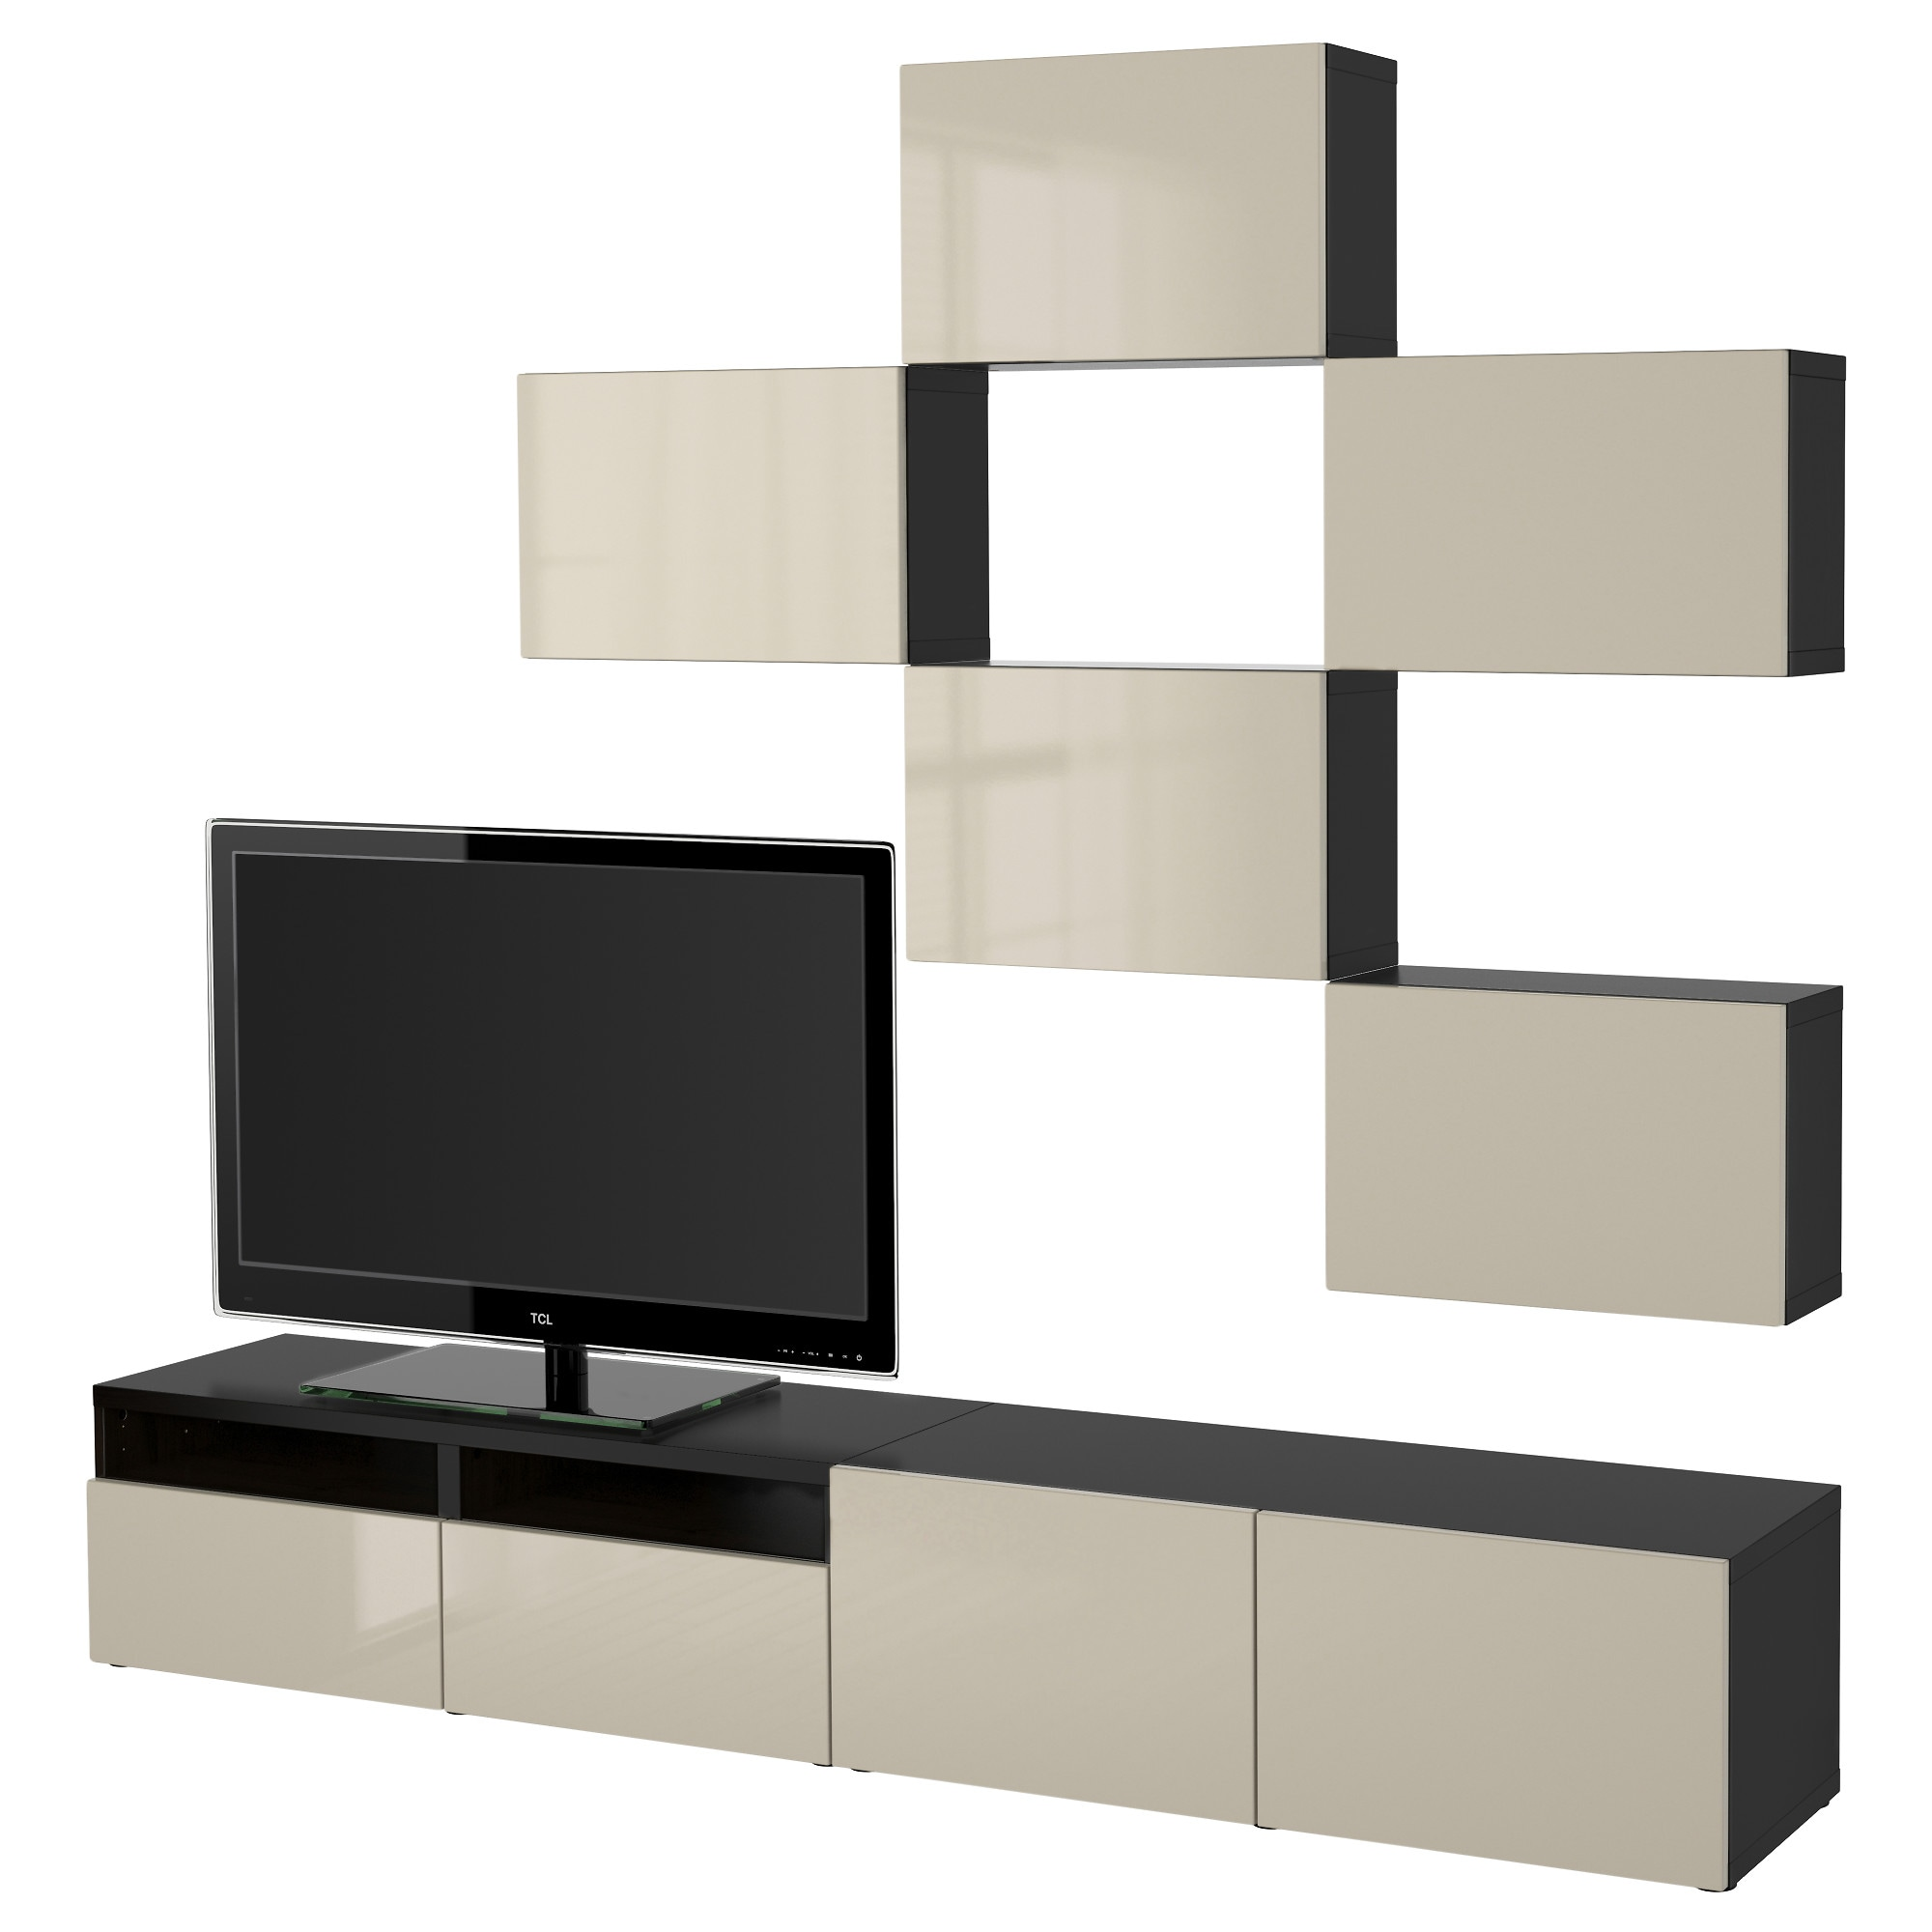 Meuble Tele Ikea - Best Tv Storage Combination Black Brown Selsviken High Gloss [mjhdah]http://arbeitsmed.info/wp-content/uploads/2017/12/meuble-tv-lack-excellent-meuble-tv-lack-with-meuble-tv-lack-full-avec-ikea-meuble-tv-et-superbe-meuble-tv-hifi-ikea-1-meuble-tele-ikea-lack-meuble-t233l233-892×1000-ikea-meuble-tv-7-892×1000.jpg